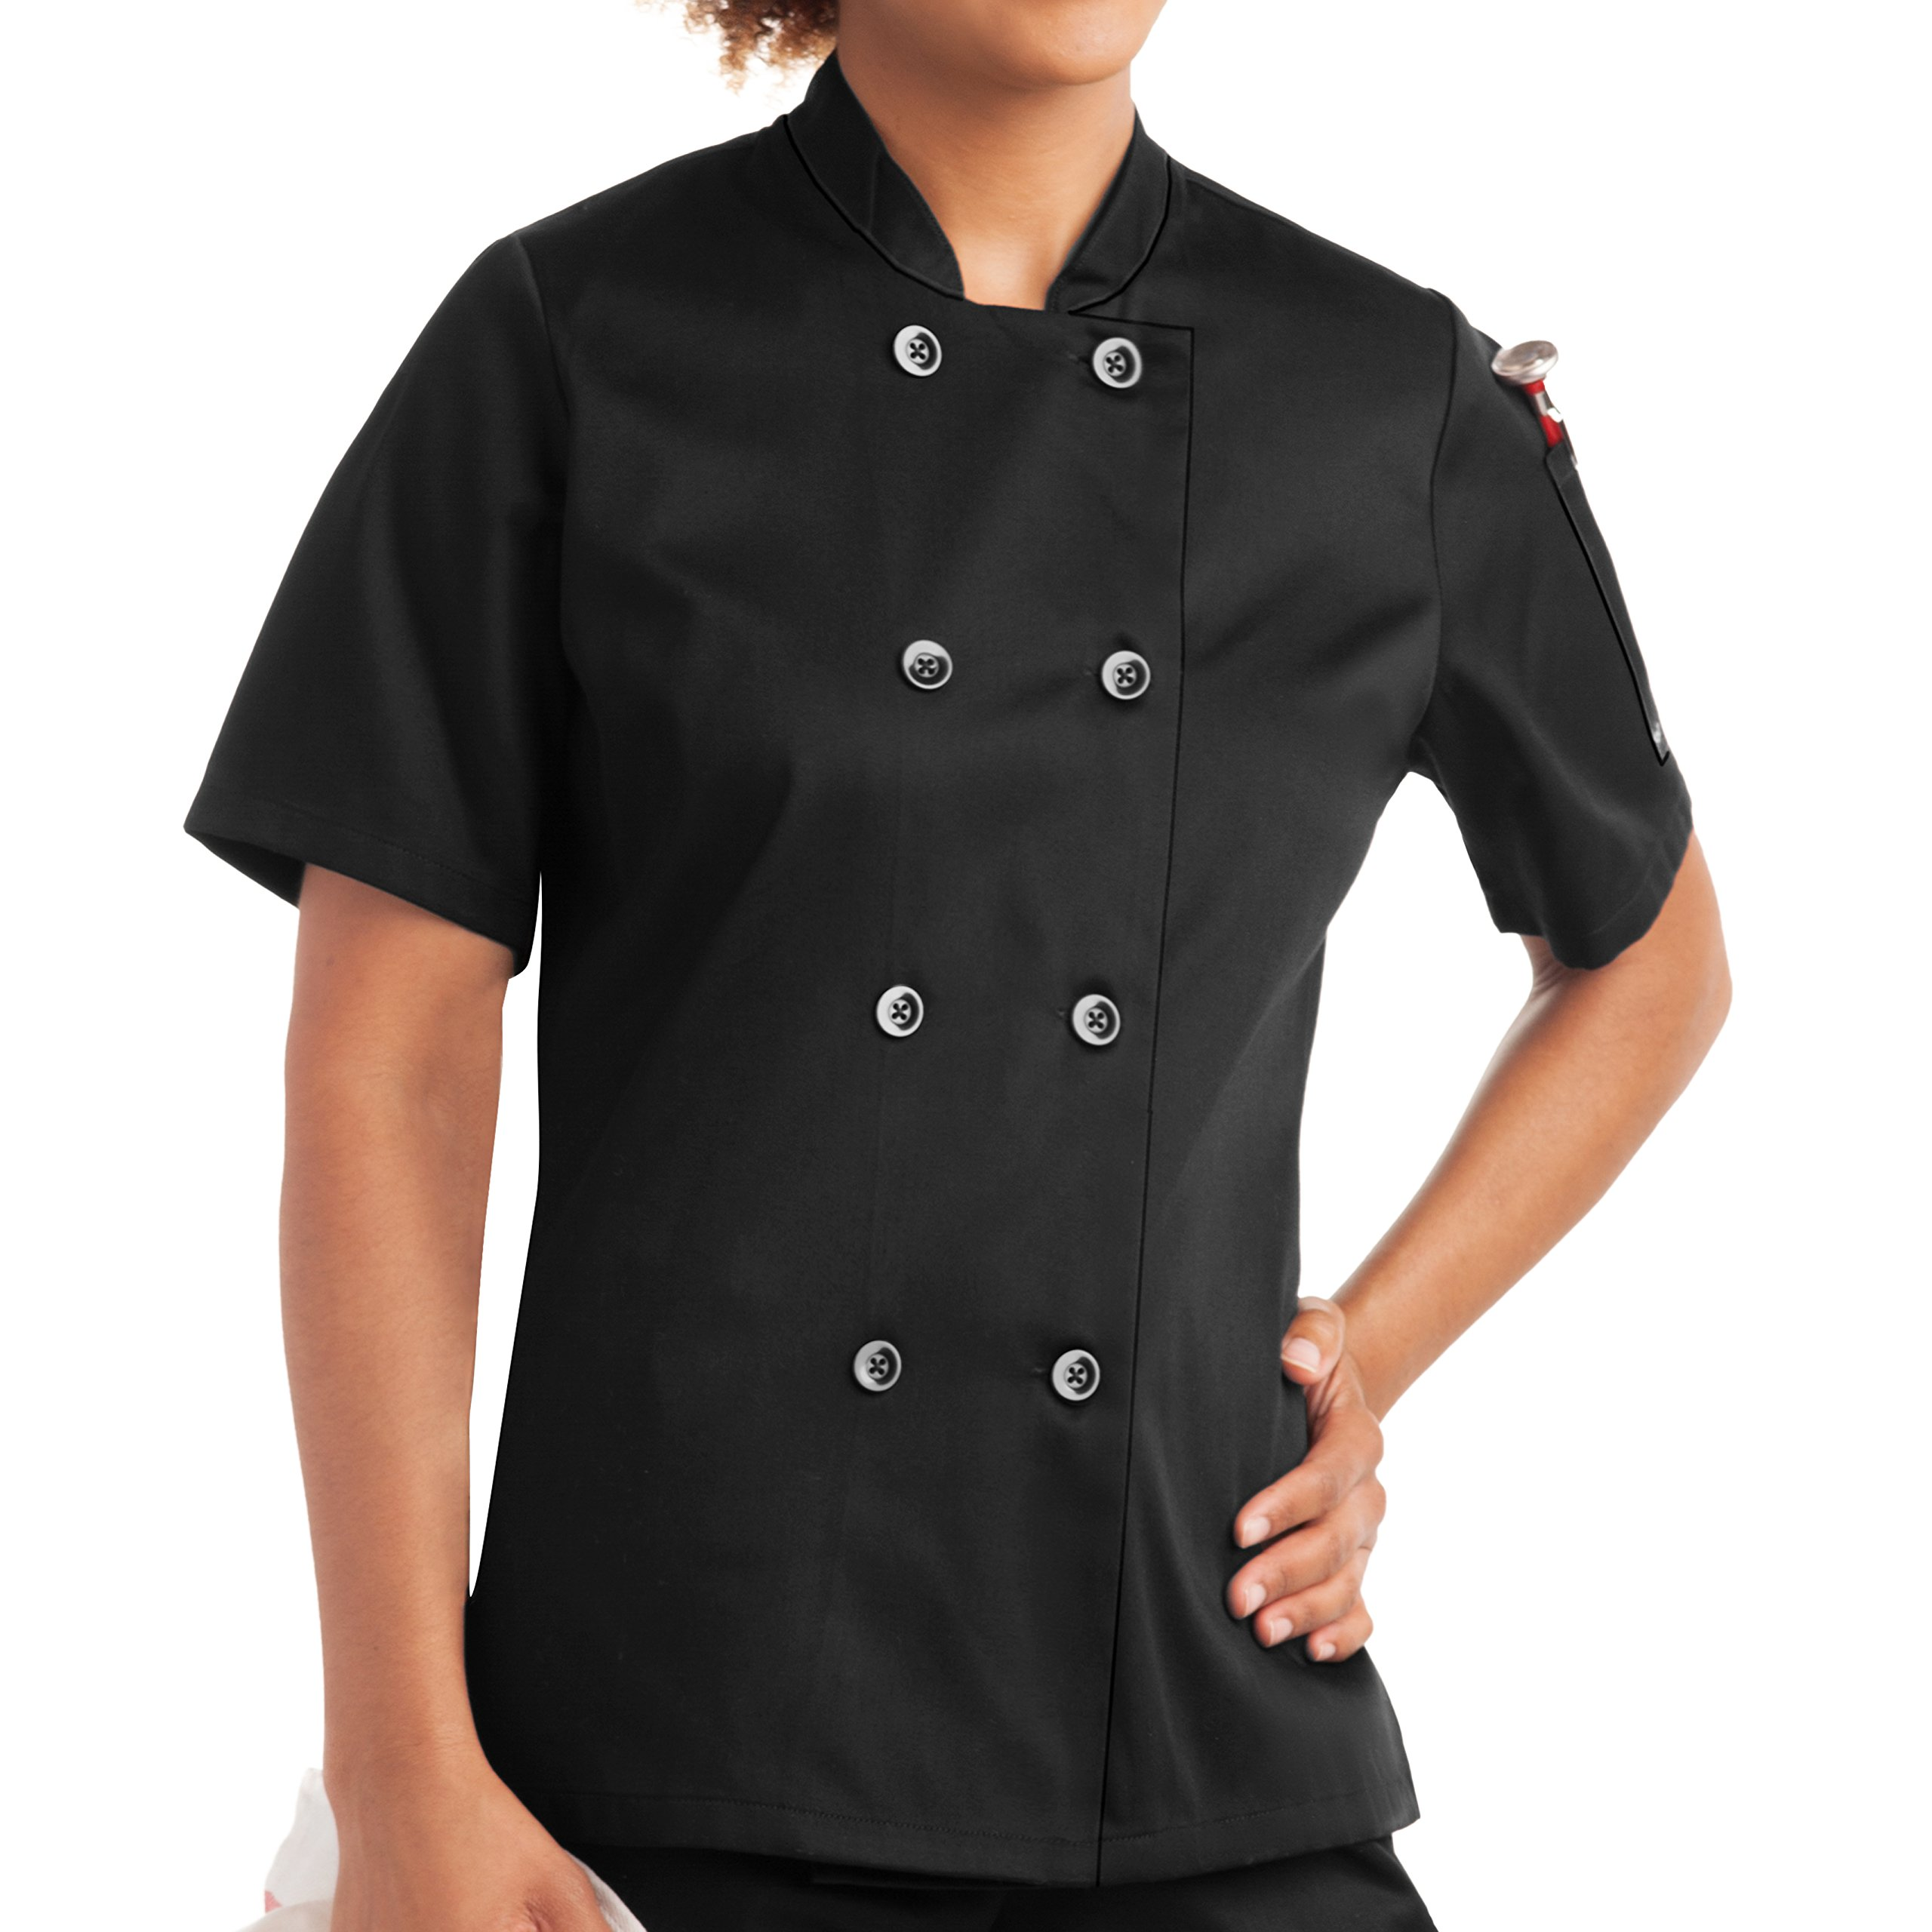 On The Line Women's Short Sleeve Chef Coat/Double Breasted/Plastic Button Reversible Front Closure (S-2X, 2 Colors) (Medium, Black)